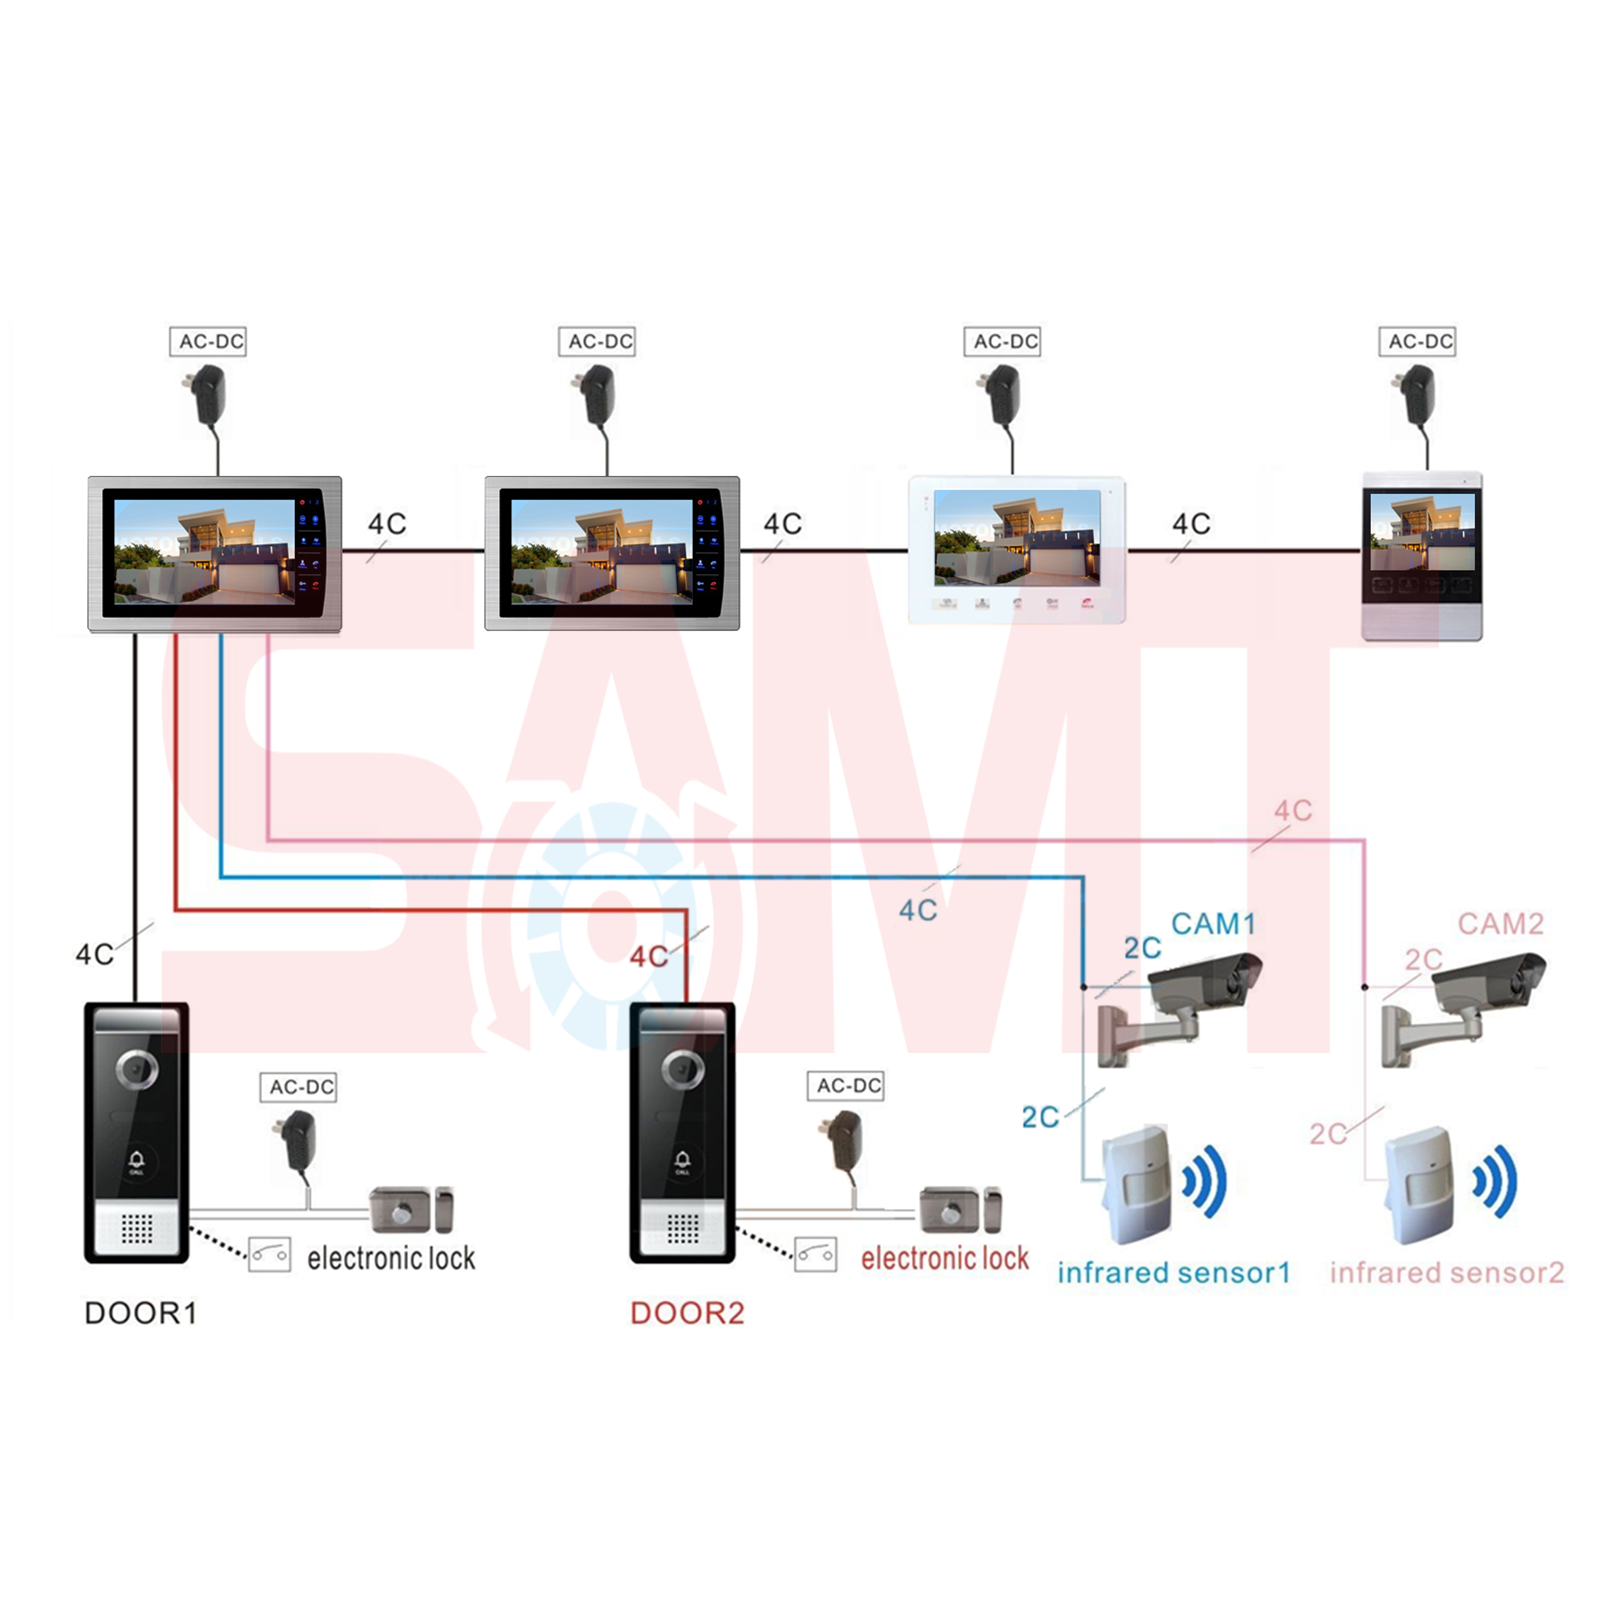 new 7 silver intercom doorbell camera kit samtgatemotors. Black Bedroom Furniture Sets. Home Design Ideas